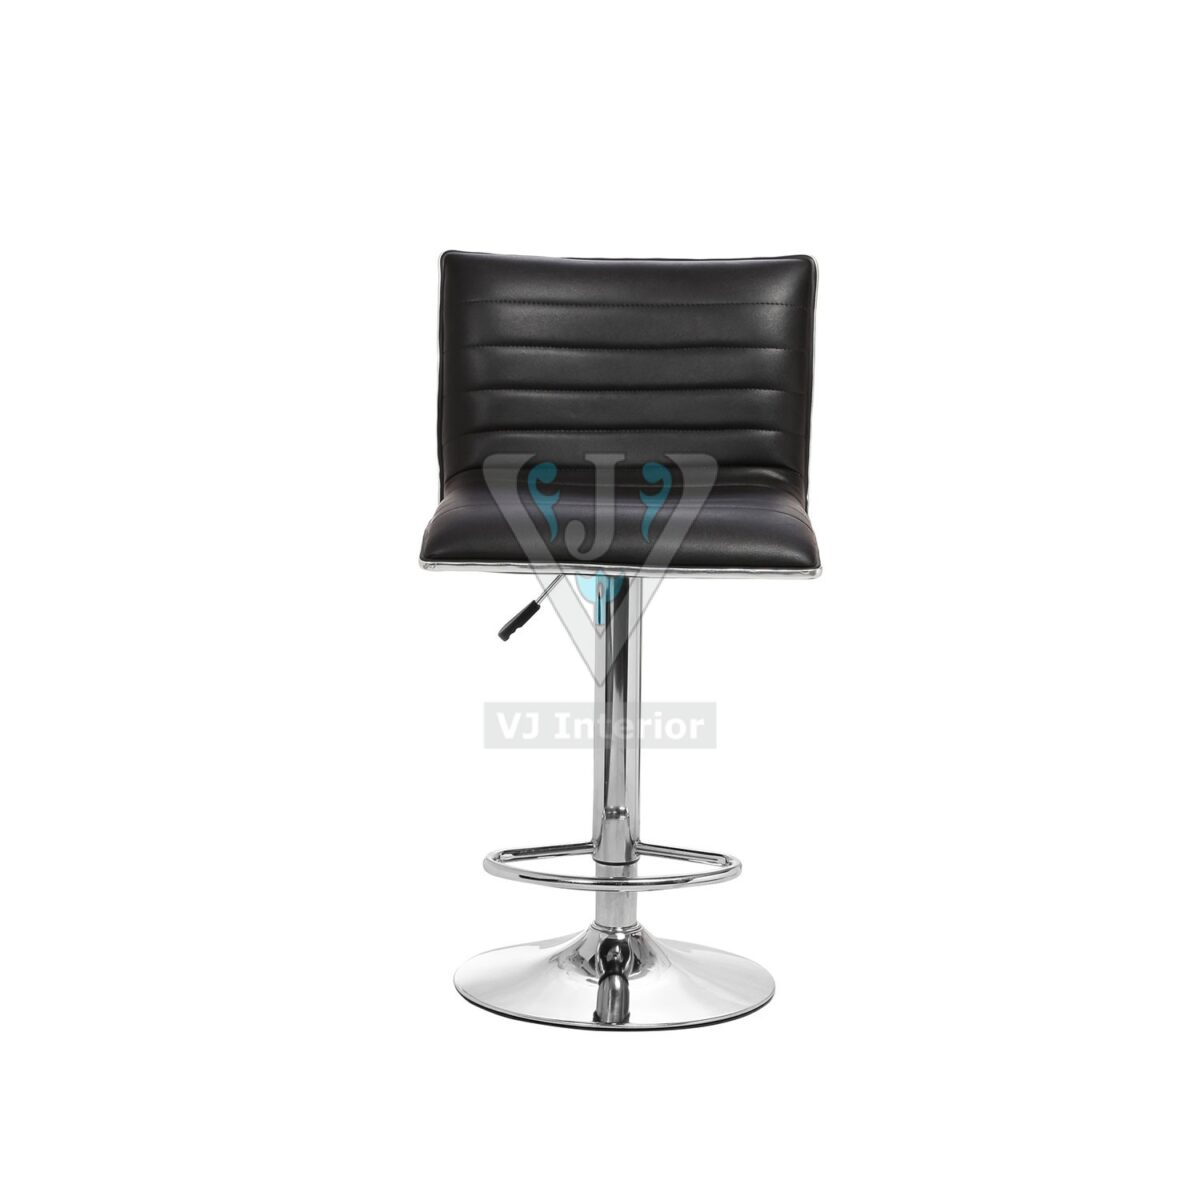 THE ESPUMA BAR STOOL BLACK